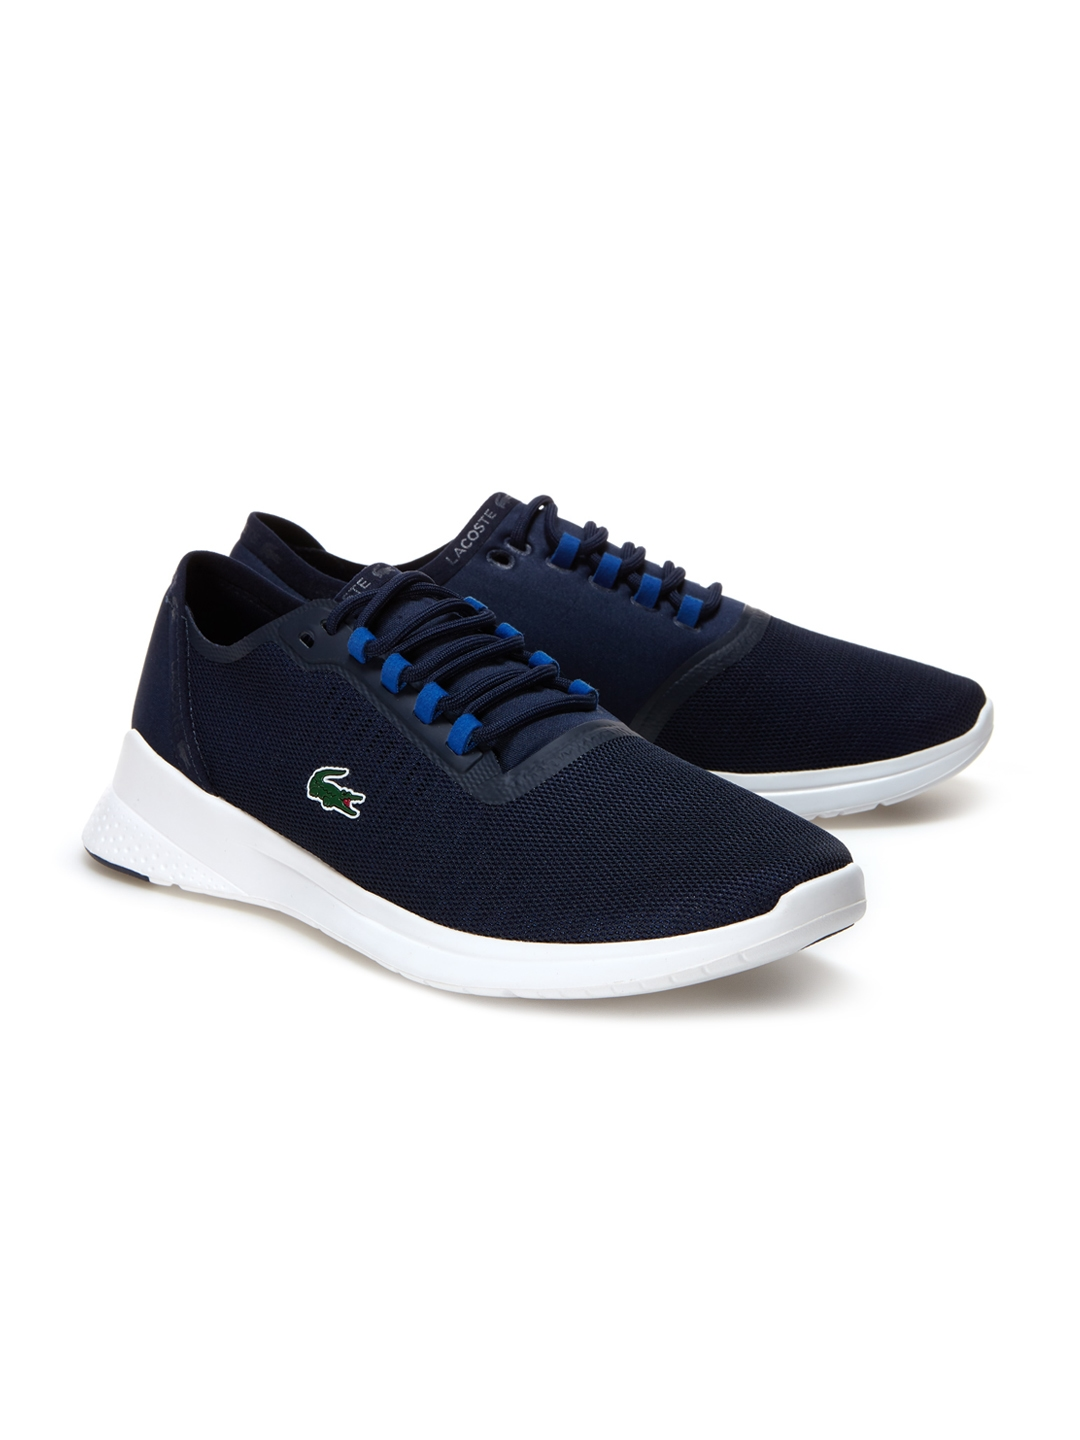 7097f512e Buy Lacoste Men Navy Blue Training Or Gym Shoes - Sports Shoes for ...